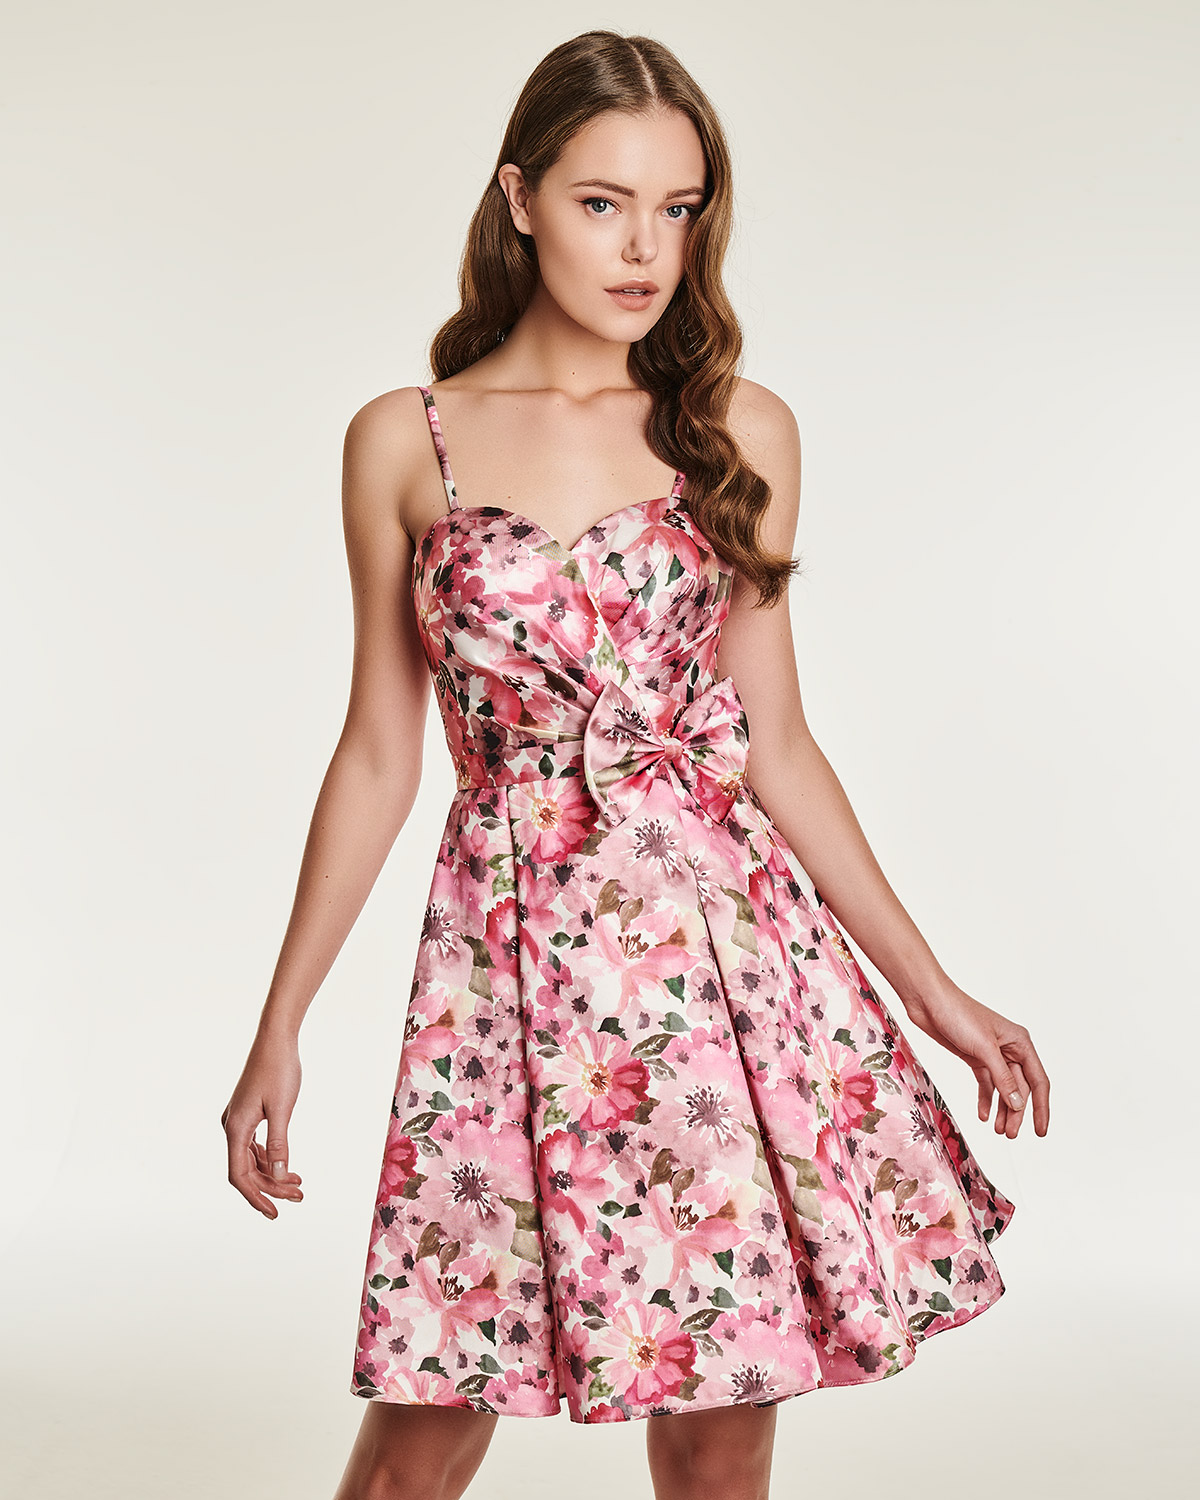 Cocktail Dresses / Cocktail strapless floral dress with a bow in the waist